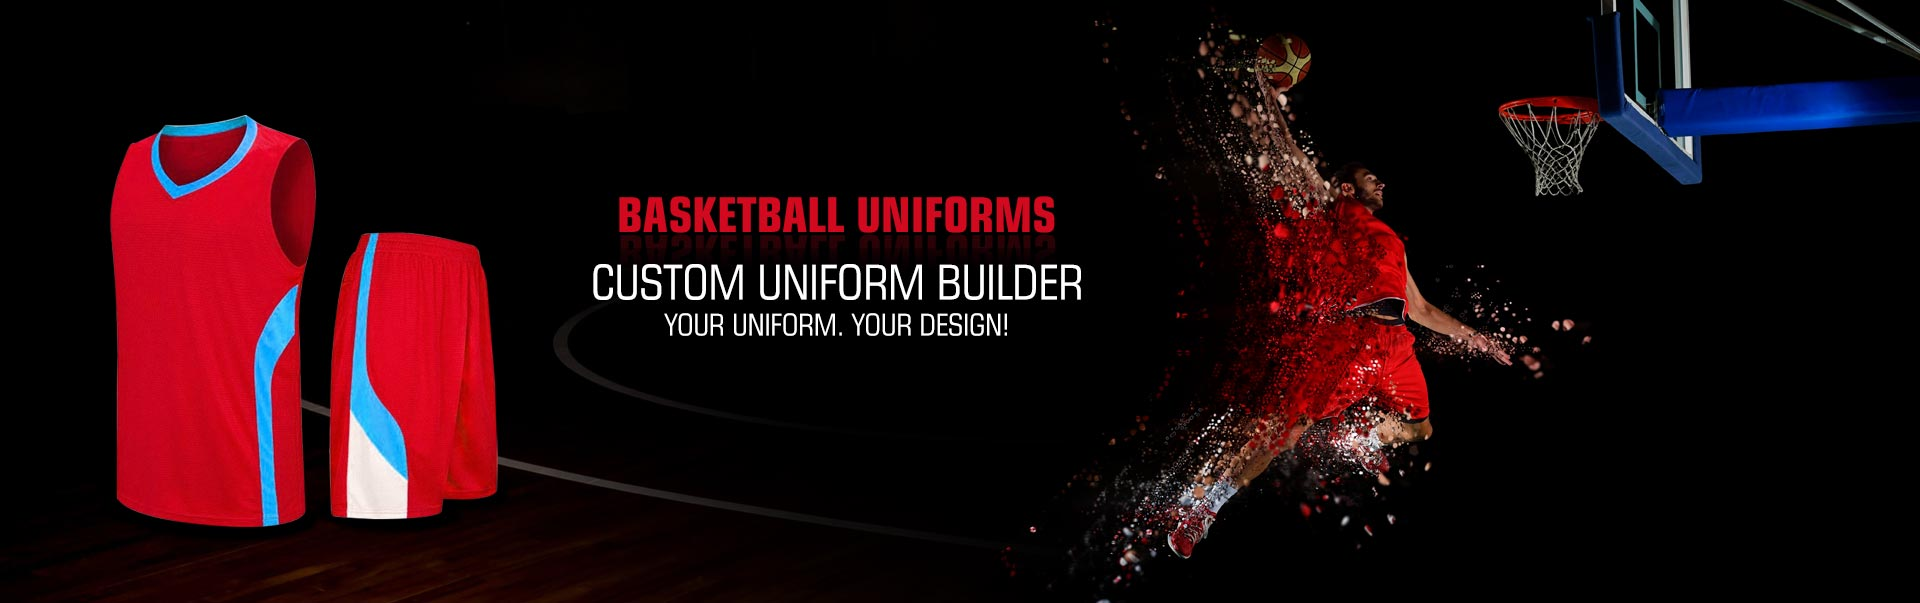 Basketball Uniforms Wholesaler, Suppliers in Pakistan